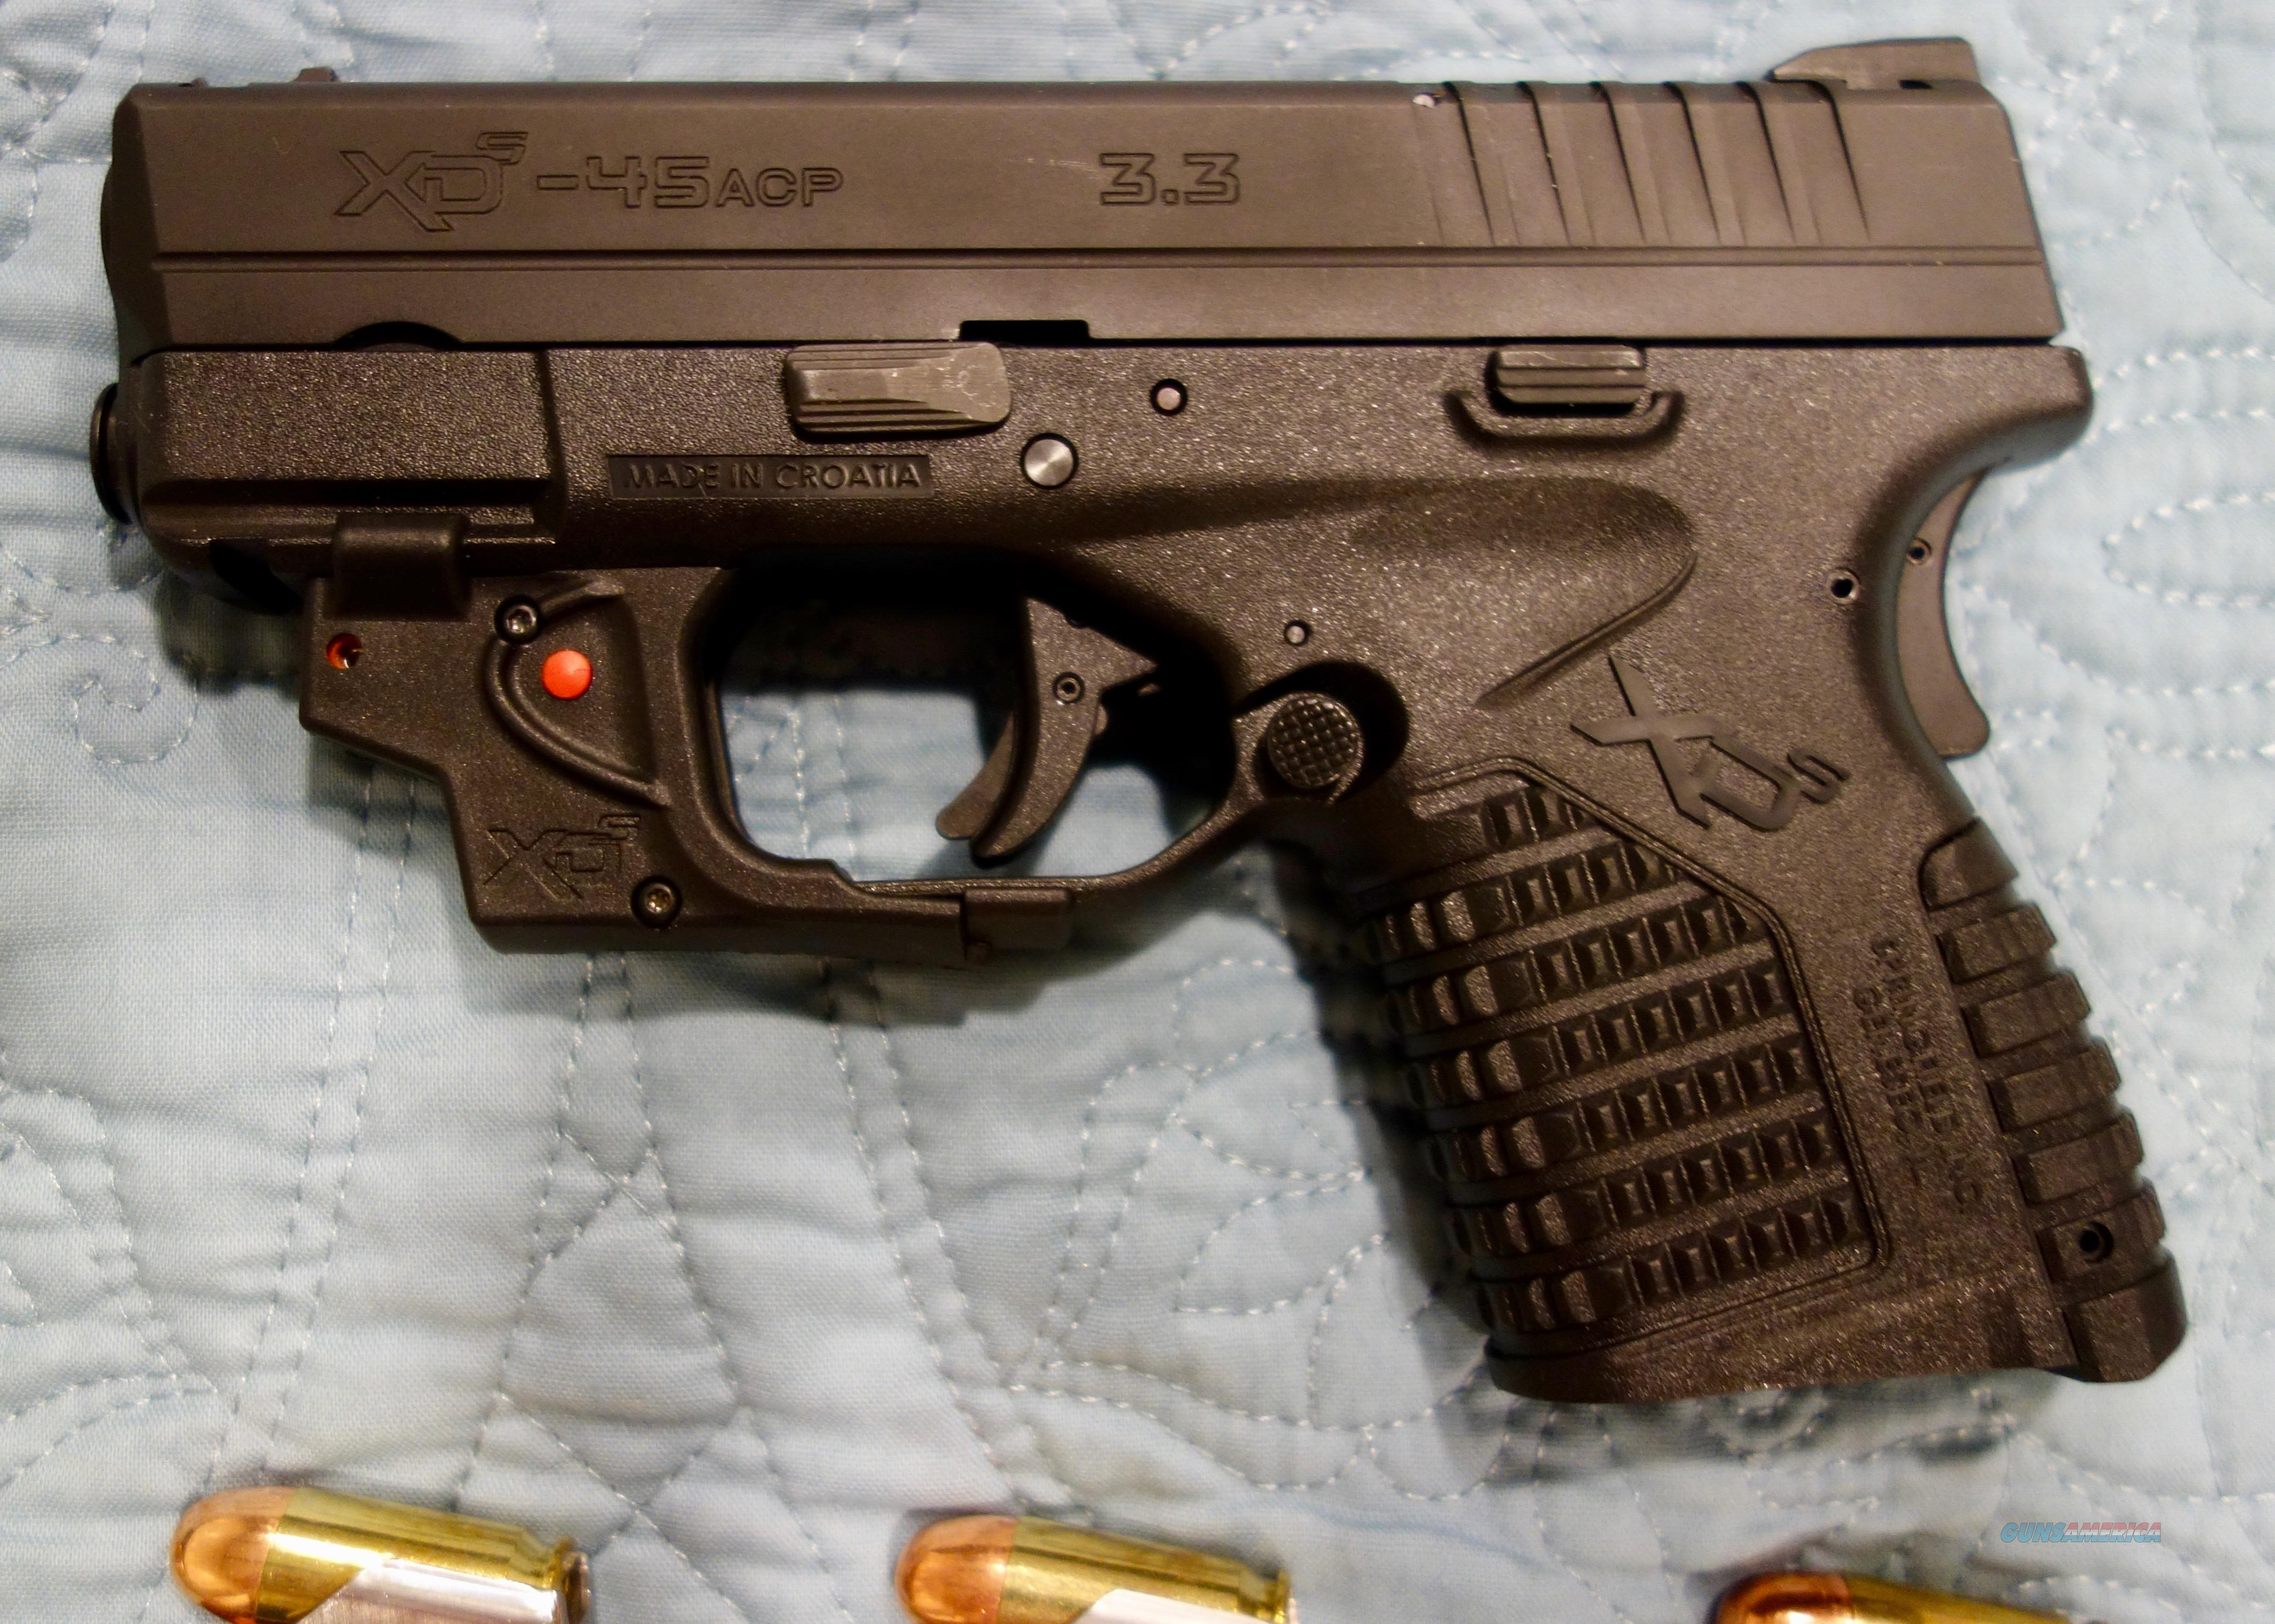 Springfield Armory XD-s 3.3 .45 Cal & accessories  Guns > Pistols > Springfield Armory Pistols > XD-S